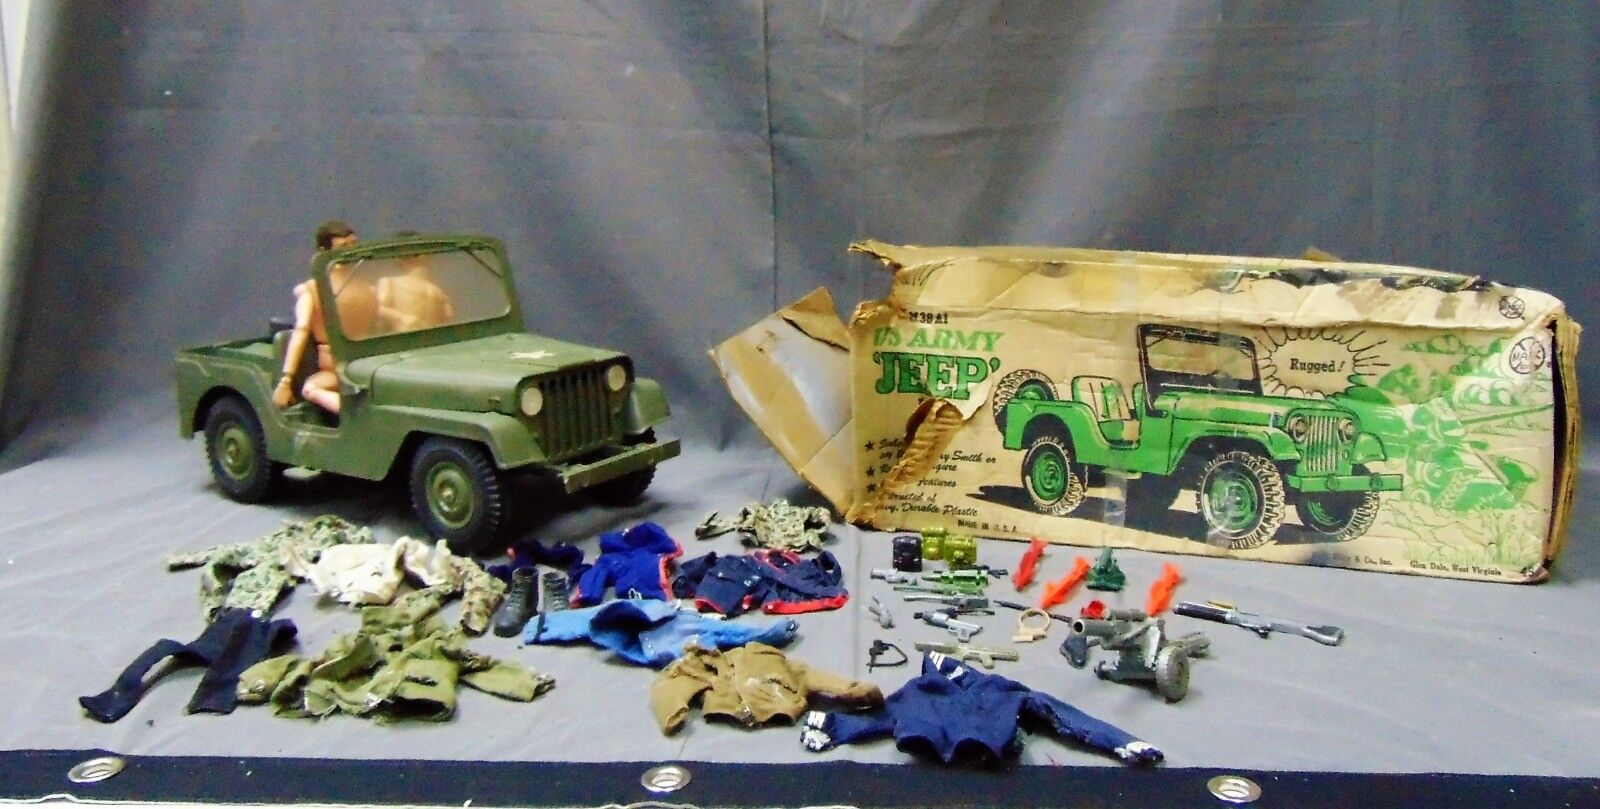 VINTAGE MILITARY TOY LOT WITH 2 GI JOE FIGURES, JEEP, CLOTHES, GUNS, AND MORE